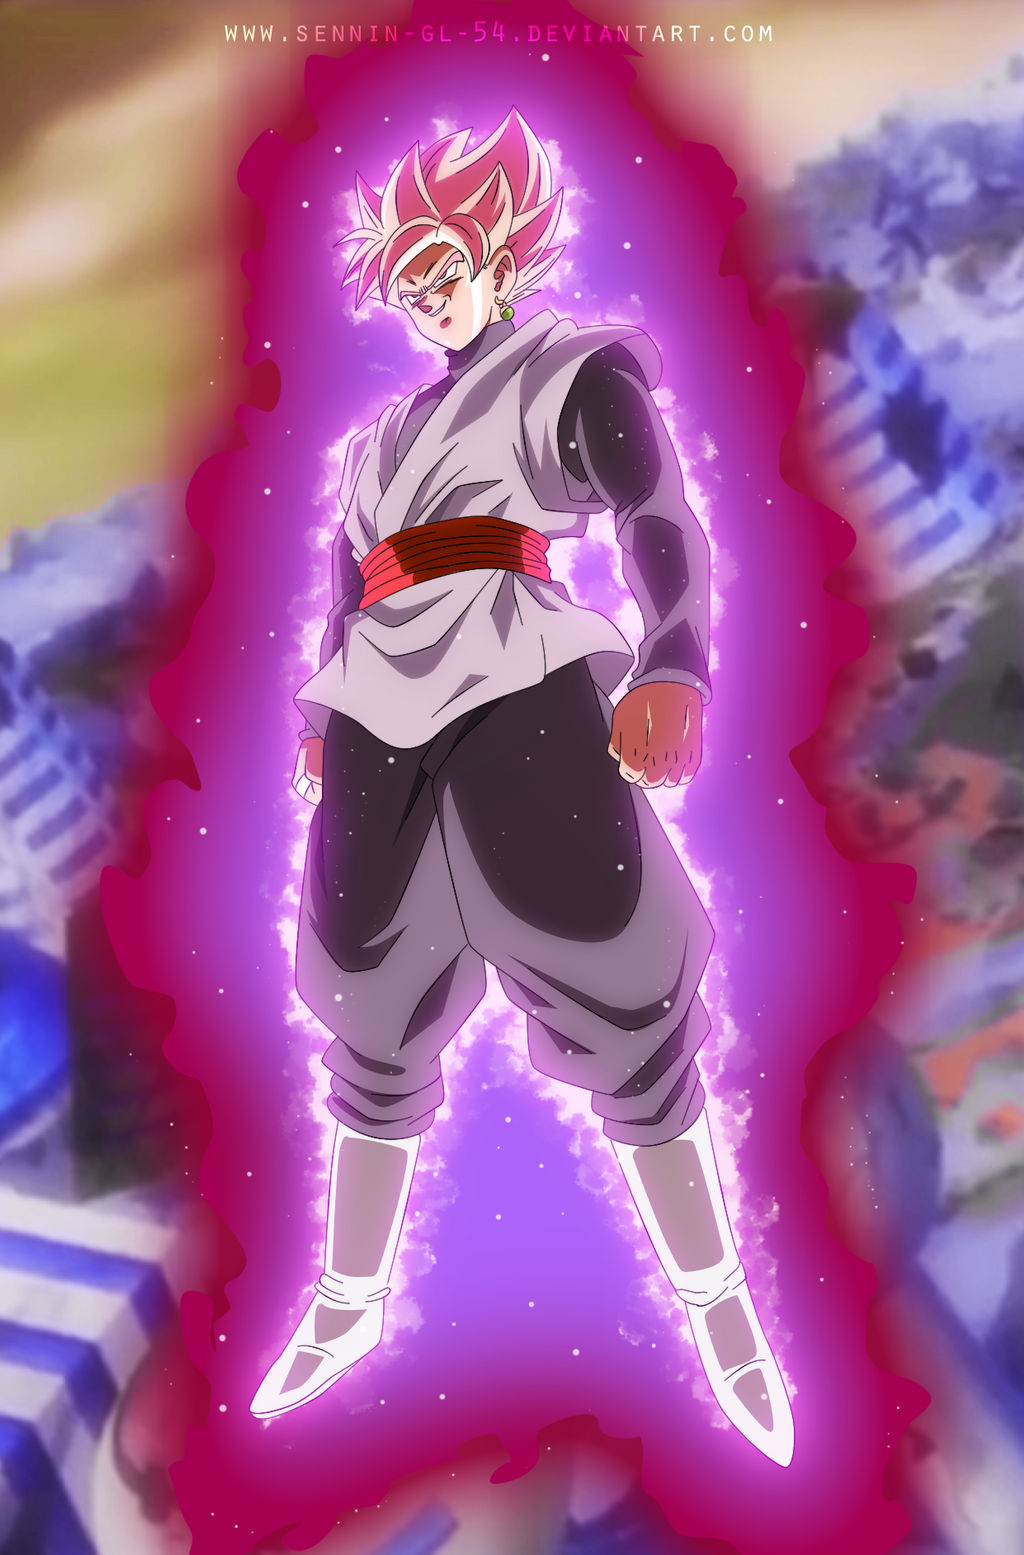 goku black rose - dbsuper by sennin-gl-54 on deviantart